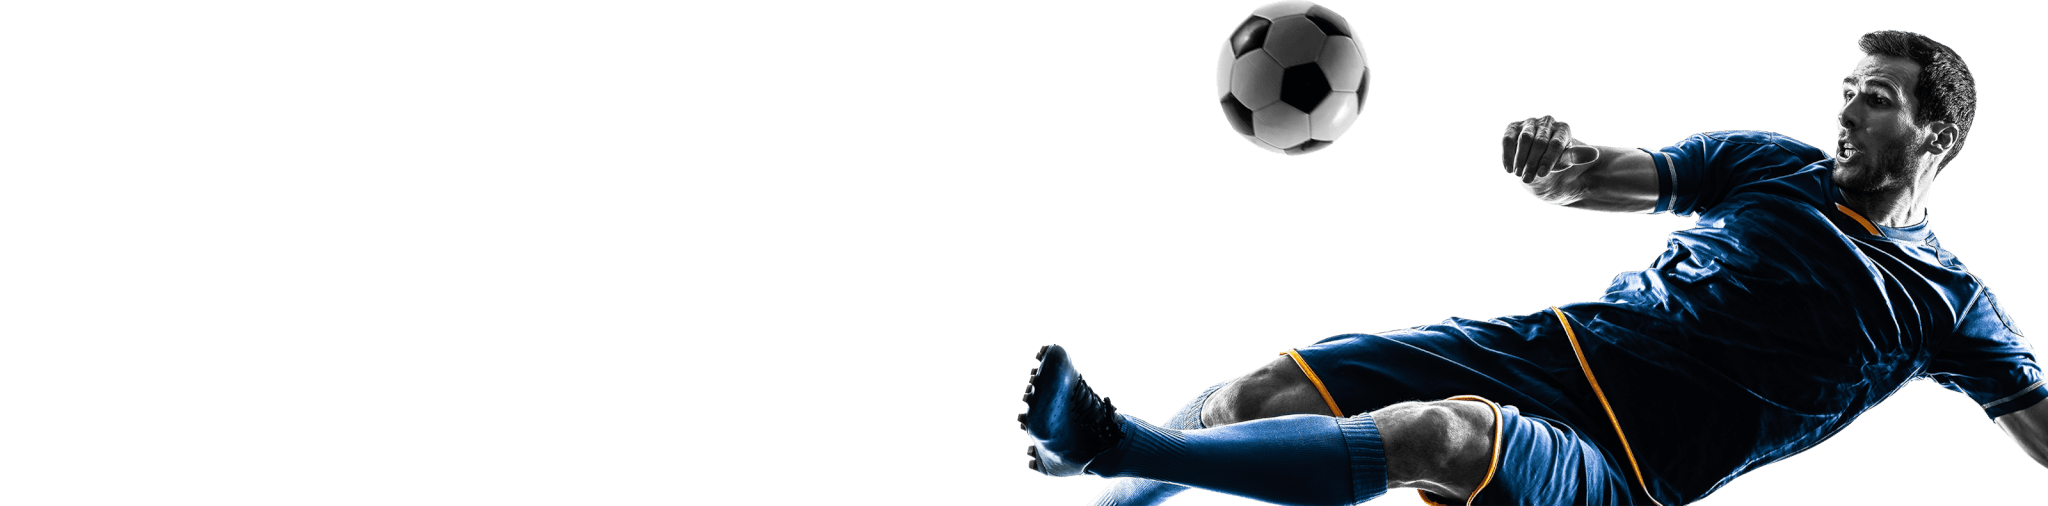 http://tpsoccer.com/wp-content/uploads/2017/12/inner_player.png